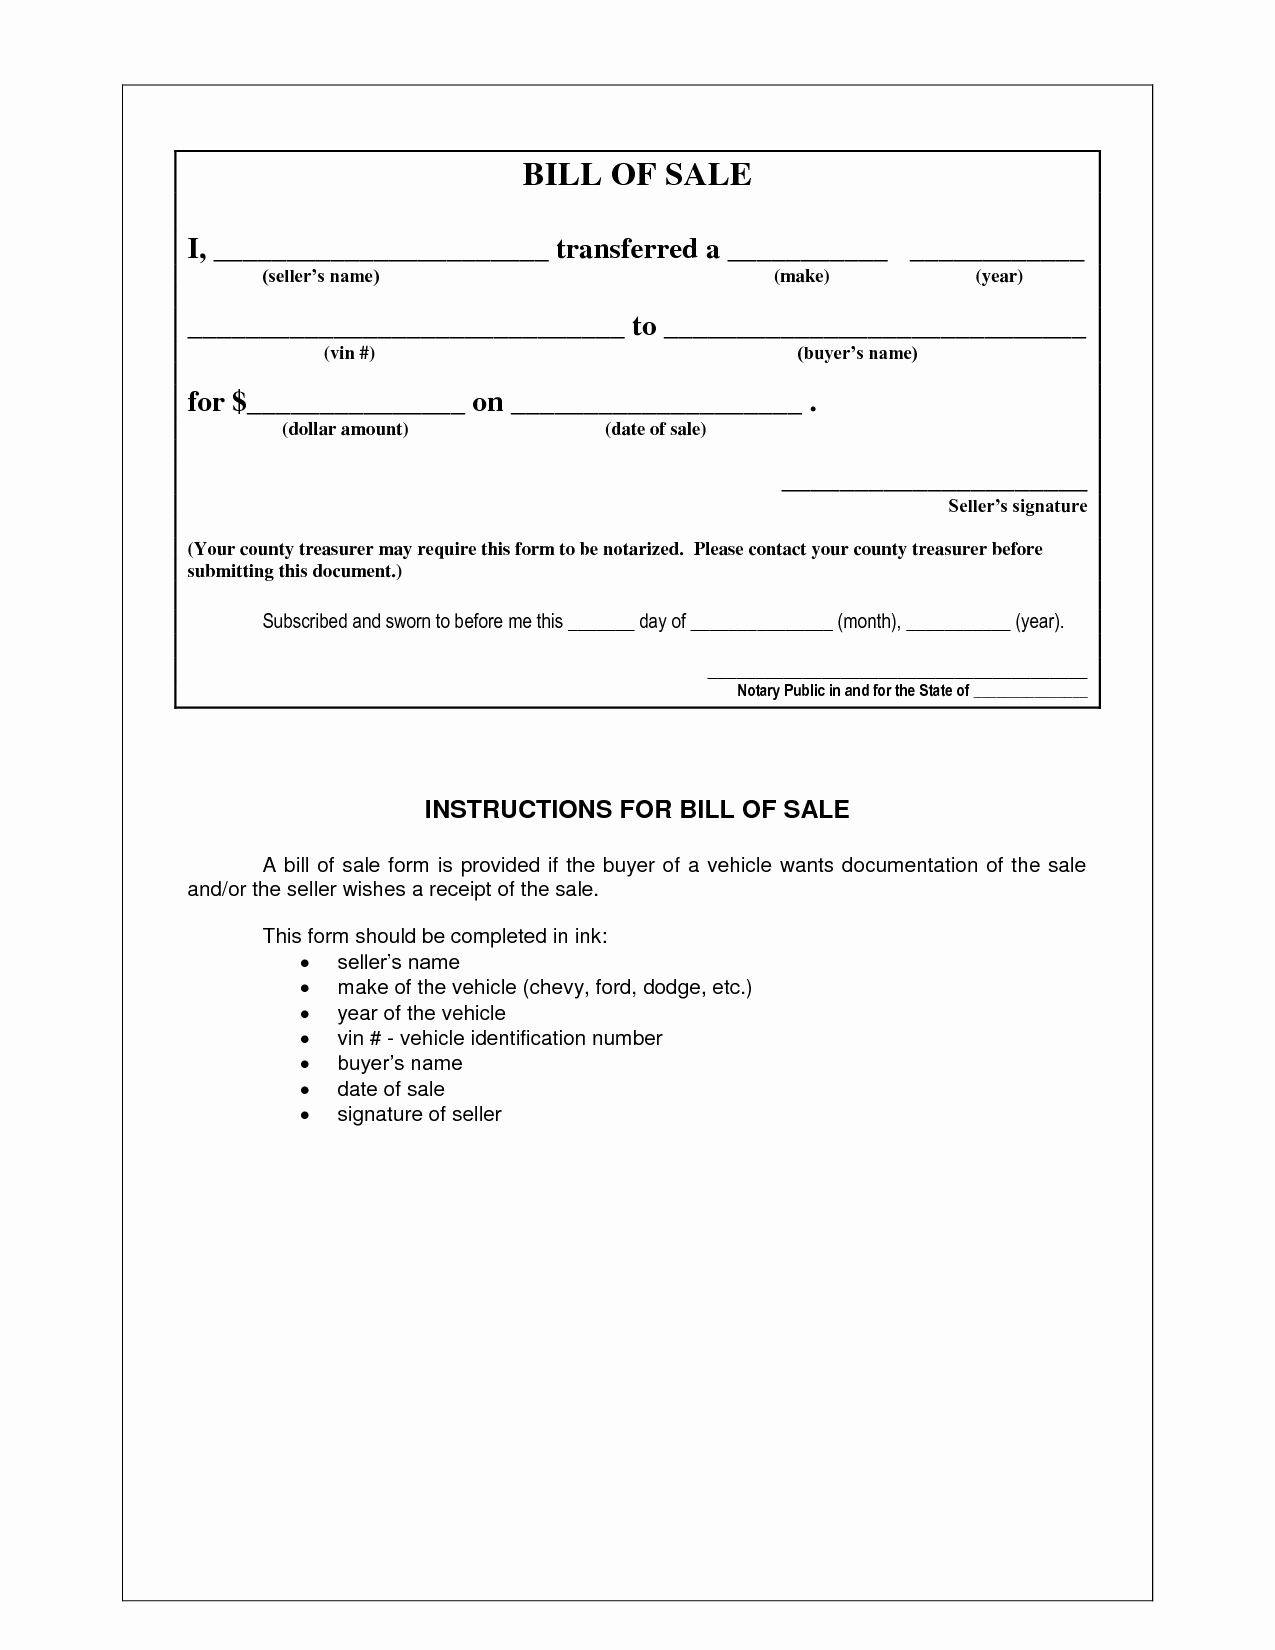 Bill Of Sale Free Inspirational Picture 5 Of 17 Example Bill Sale form